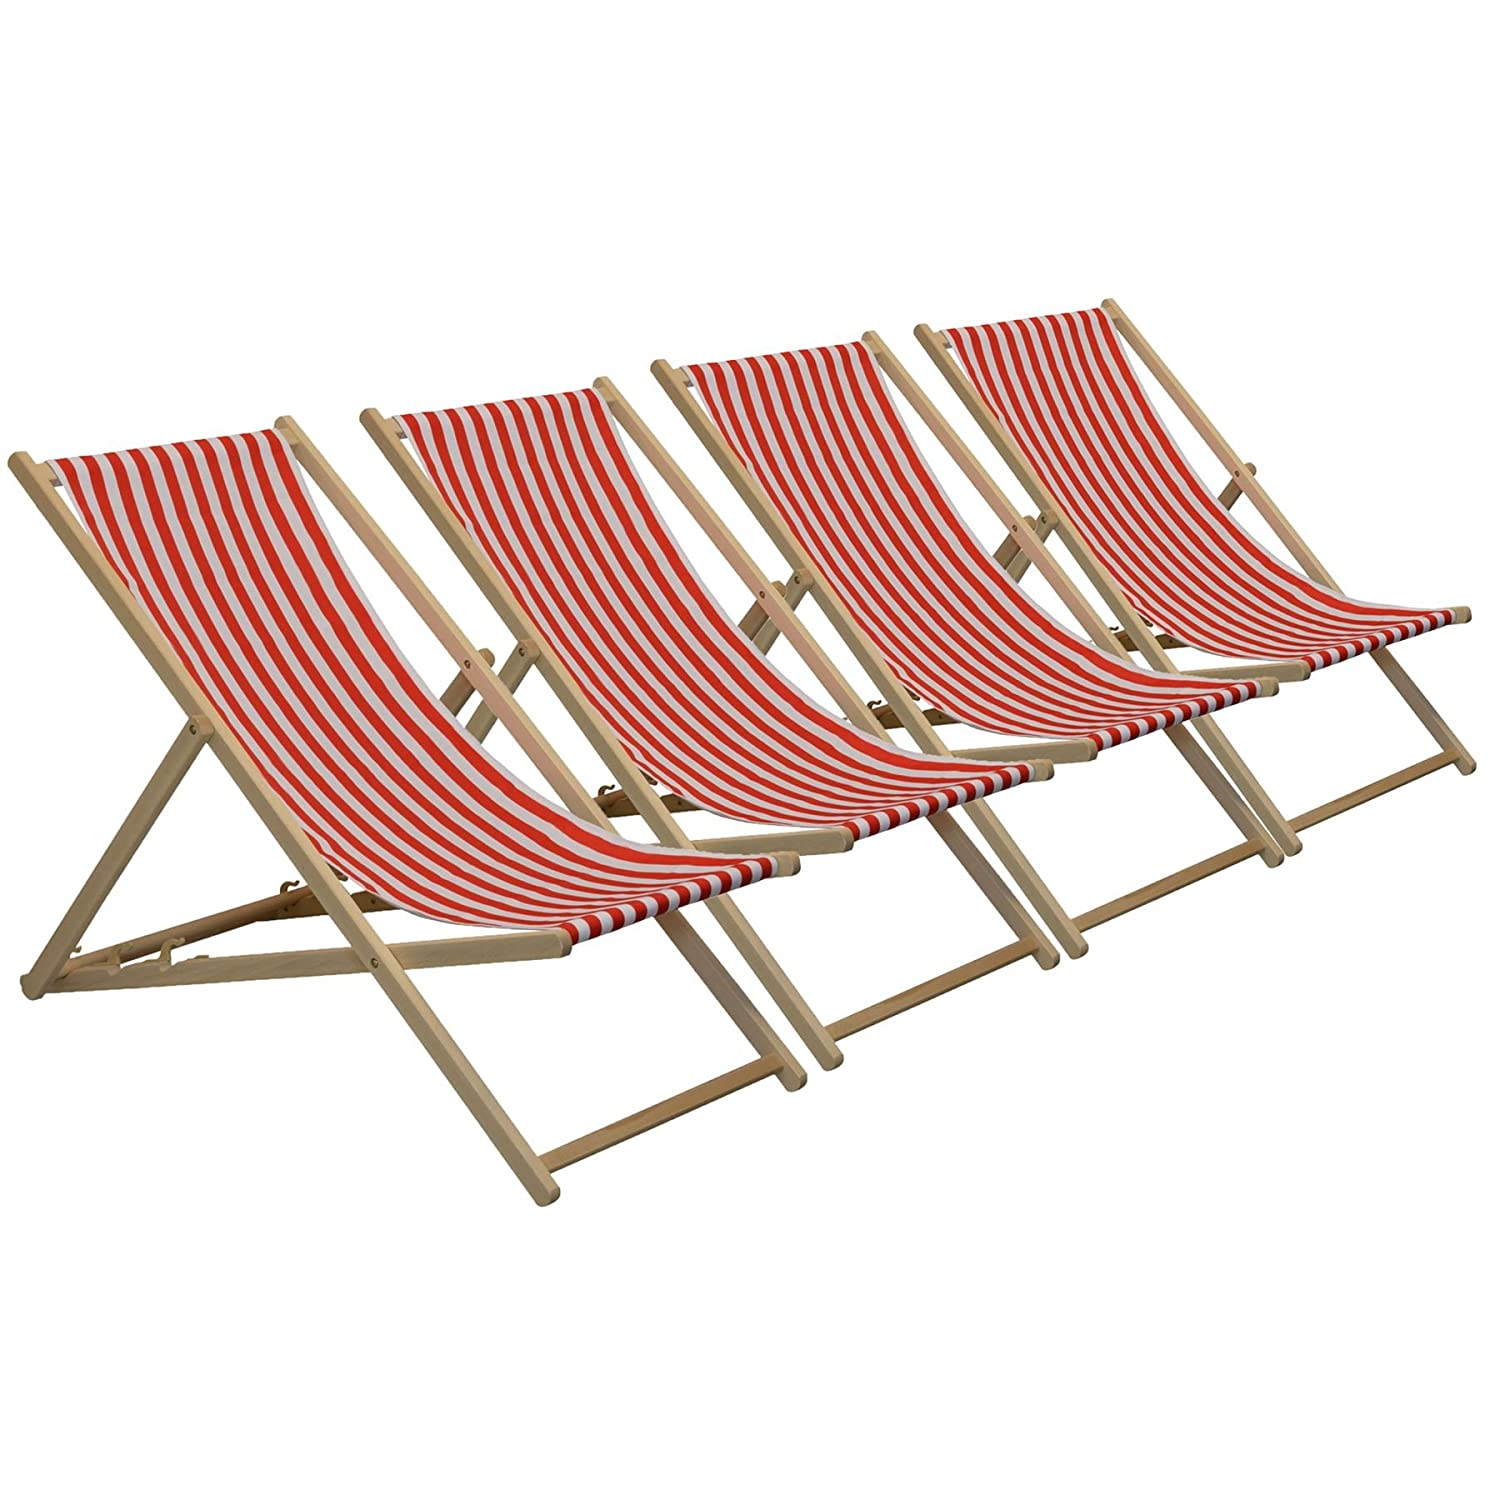 Traditional Adjustable Garden / Beach-style Deck Chair - Red / White Stripe - Pack of 4 Harbour Housewares